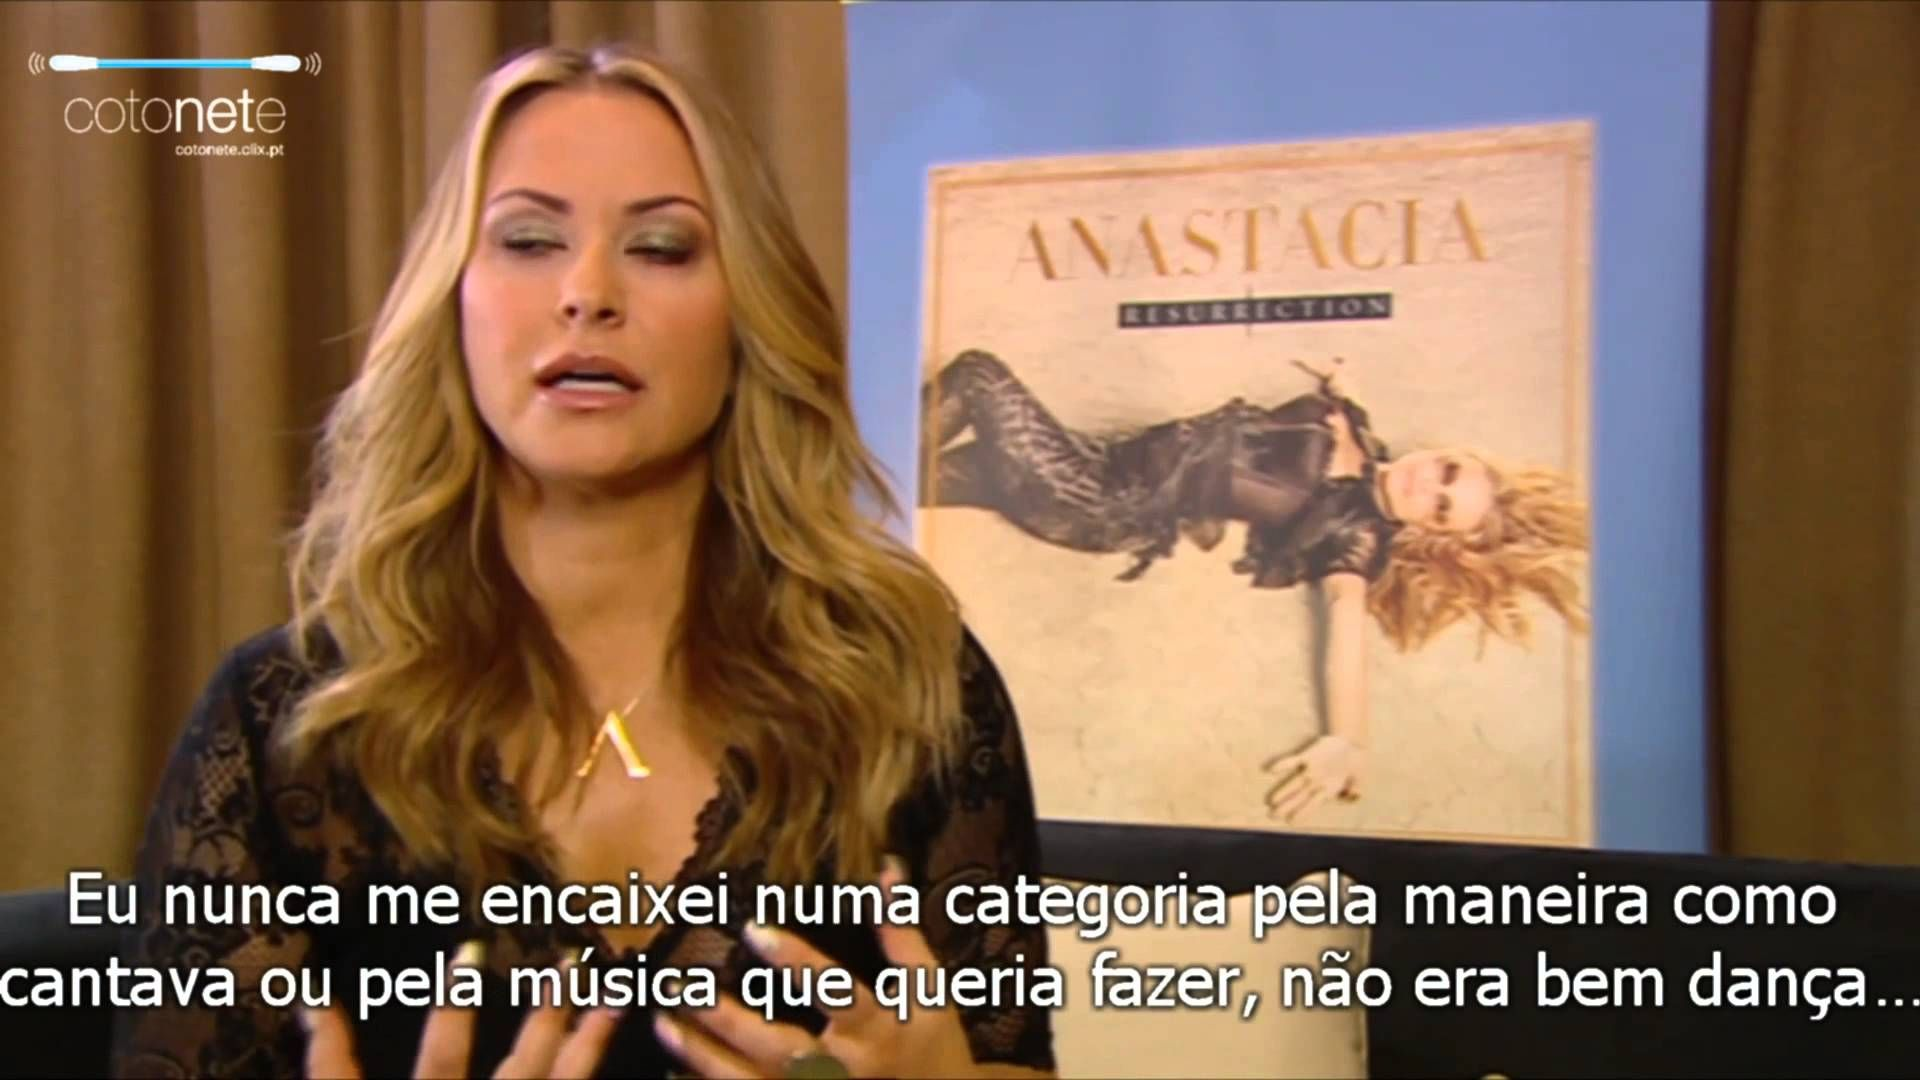 NEWS:  More interviews for Portuguese press are arriving! This time Anastacia was interviewed by Cotonete - Música e Rádios Online where she talked about her new album, parfum, labels and how much she loves our Portugal. ✿ For Máxima magazine: http://goo.gl/T3RS6N  ✿ For Passadeira vermelha: http://goo.gl/2SuiuI